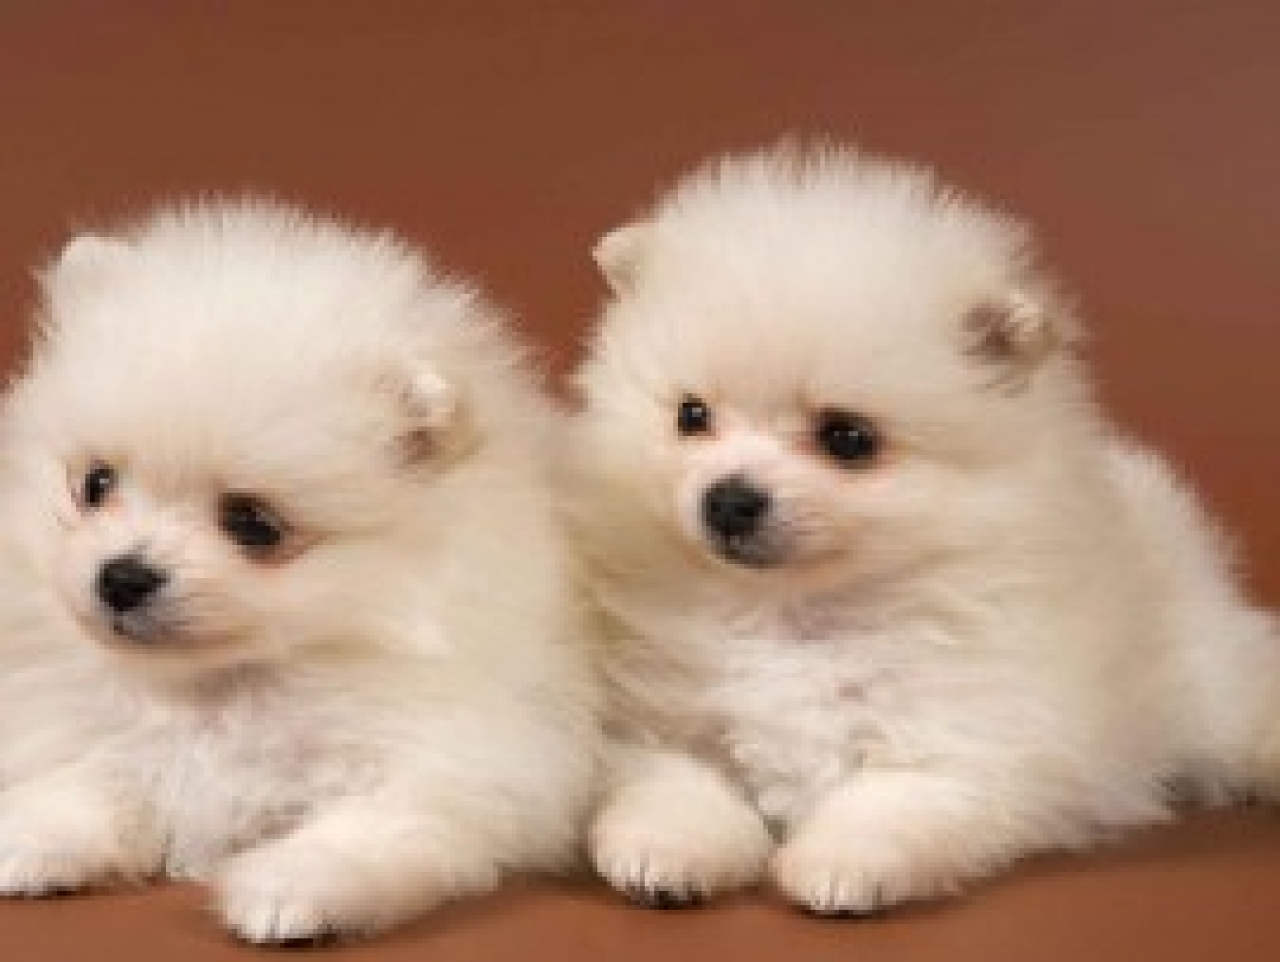 Cute Puppies HD Wallpapers HD Wallpapers 360 1280x962